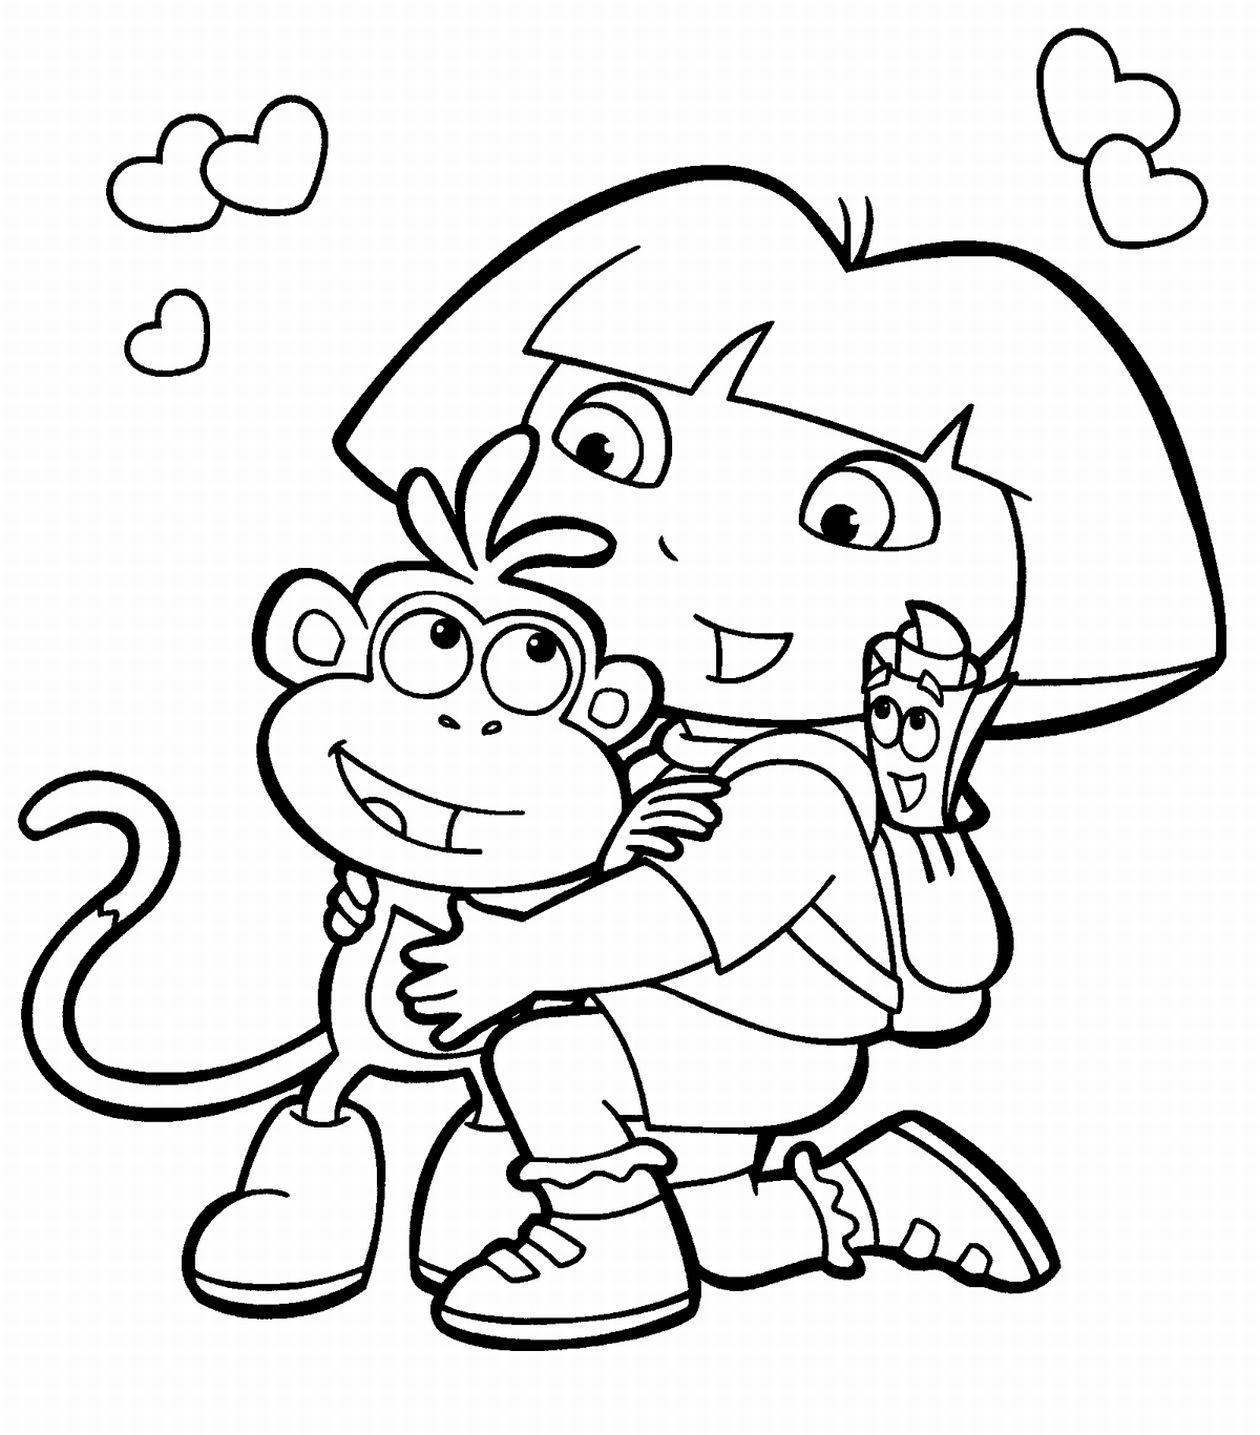 Best ideas about Free Coloring Pages To Print For Kids . Save or Pin Best Free Printable Coloring Pages for Kids and Teens Now.